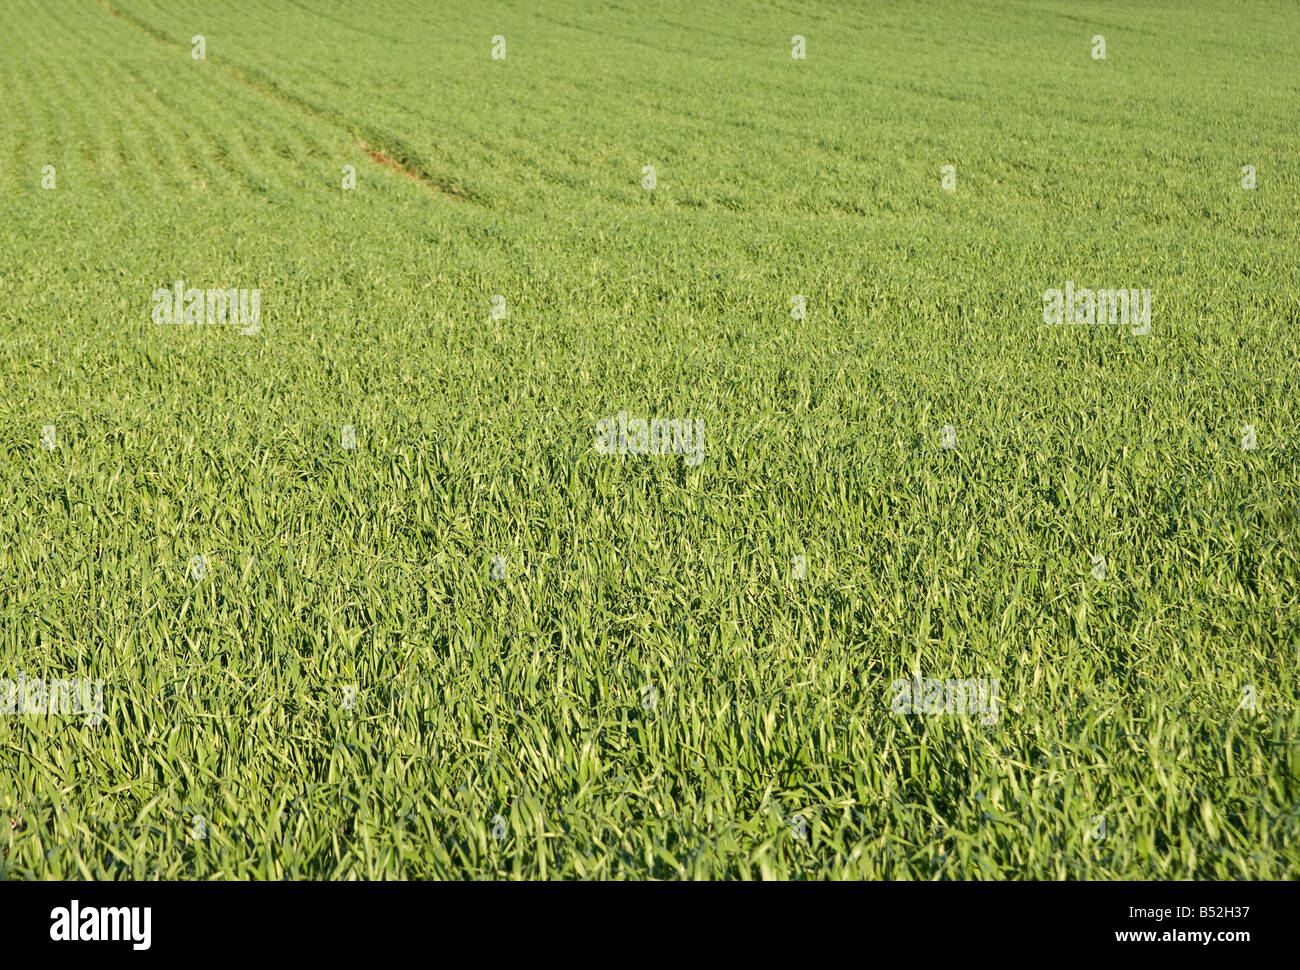 Great Image Of A Nice Green Field Of Grass Stock Photo